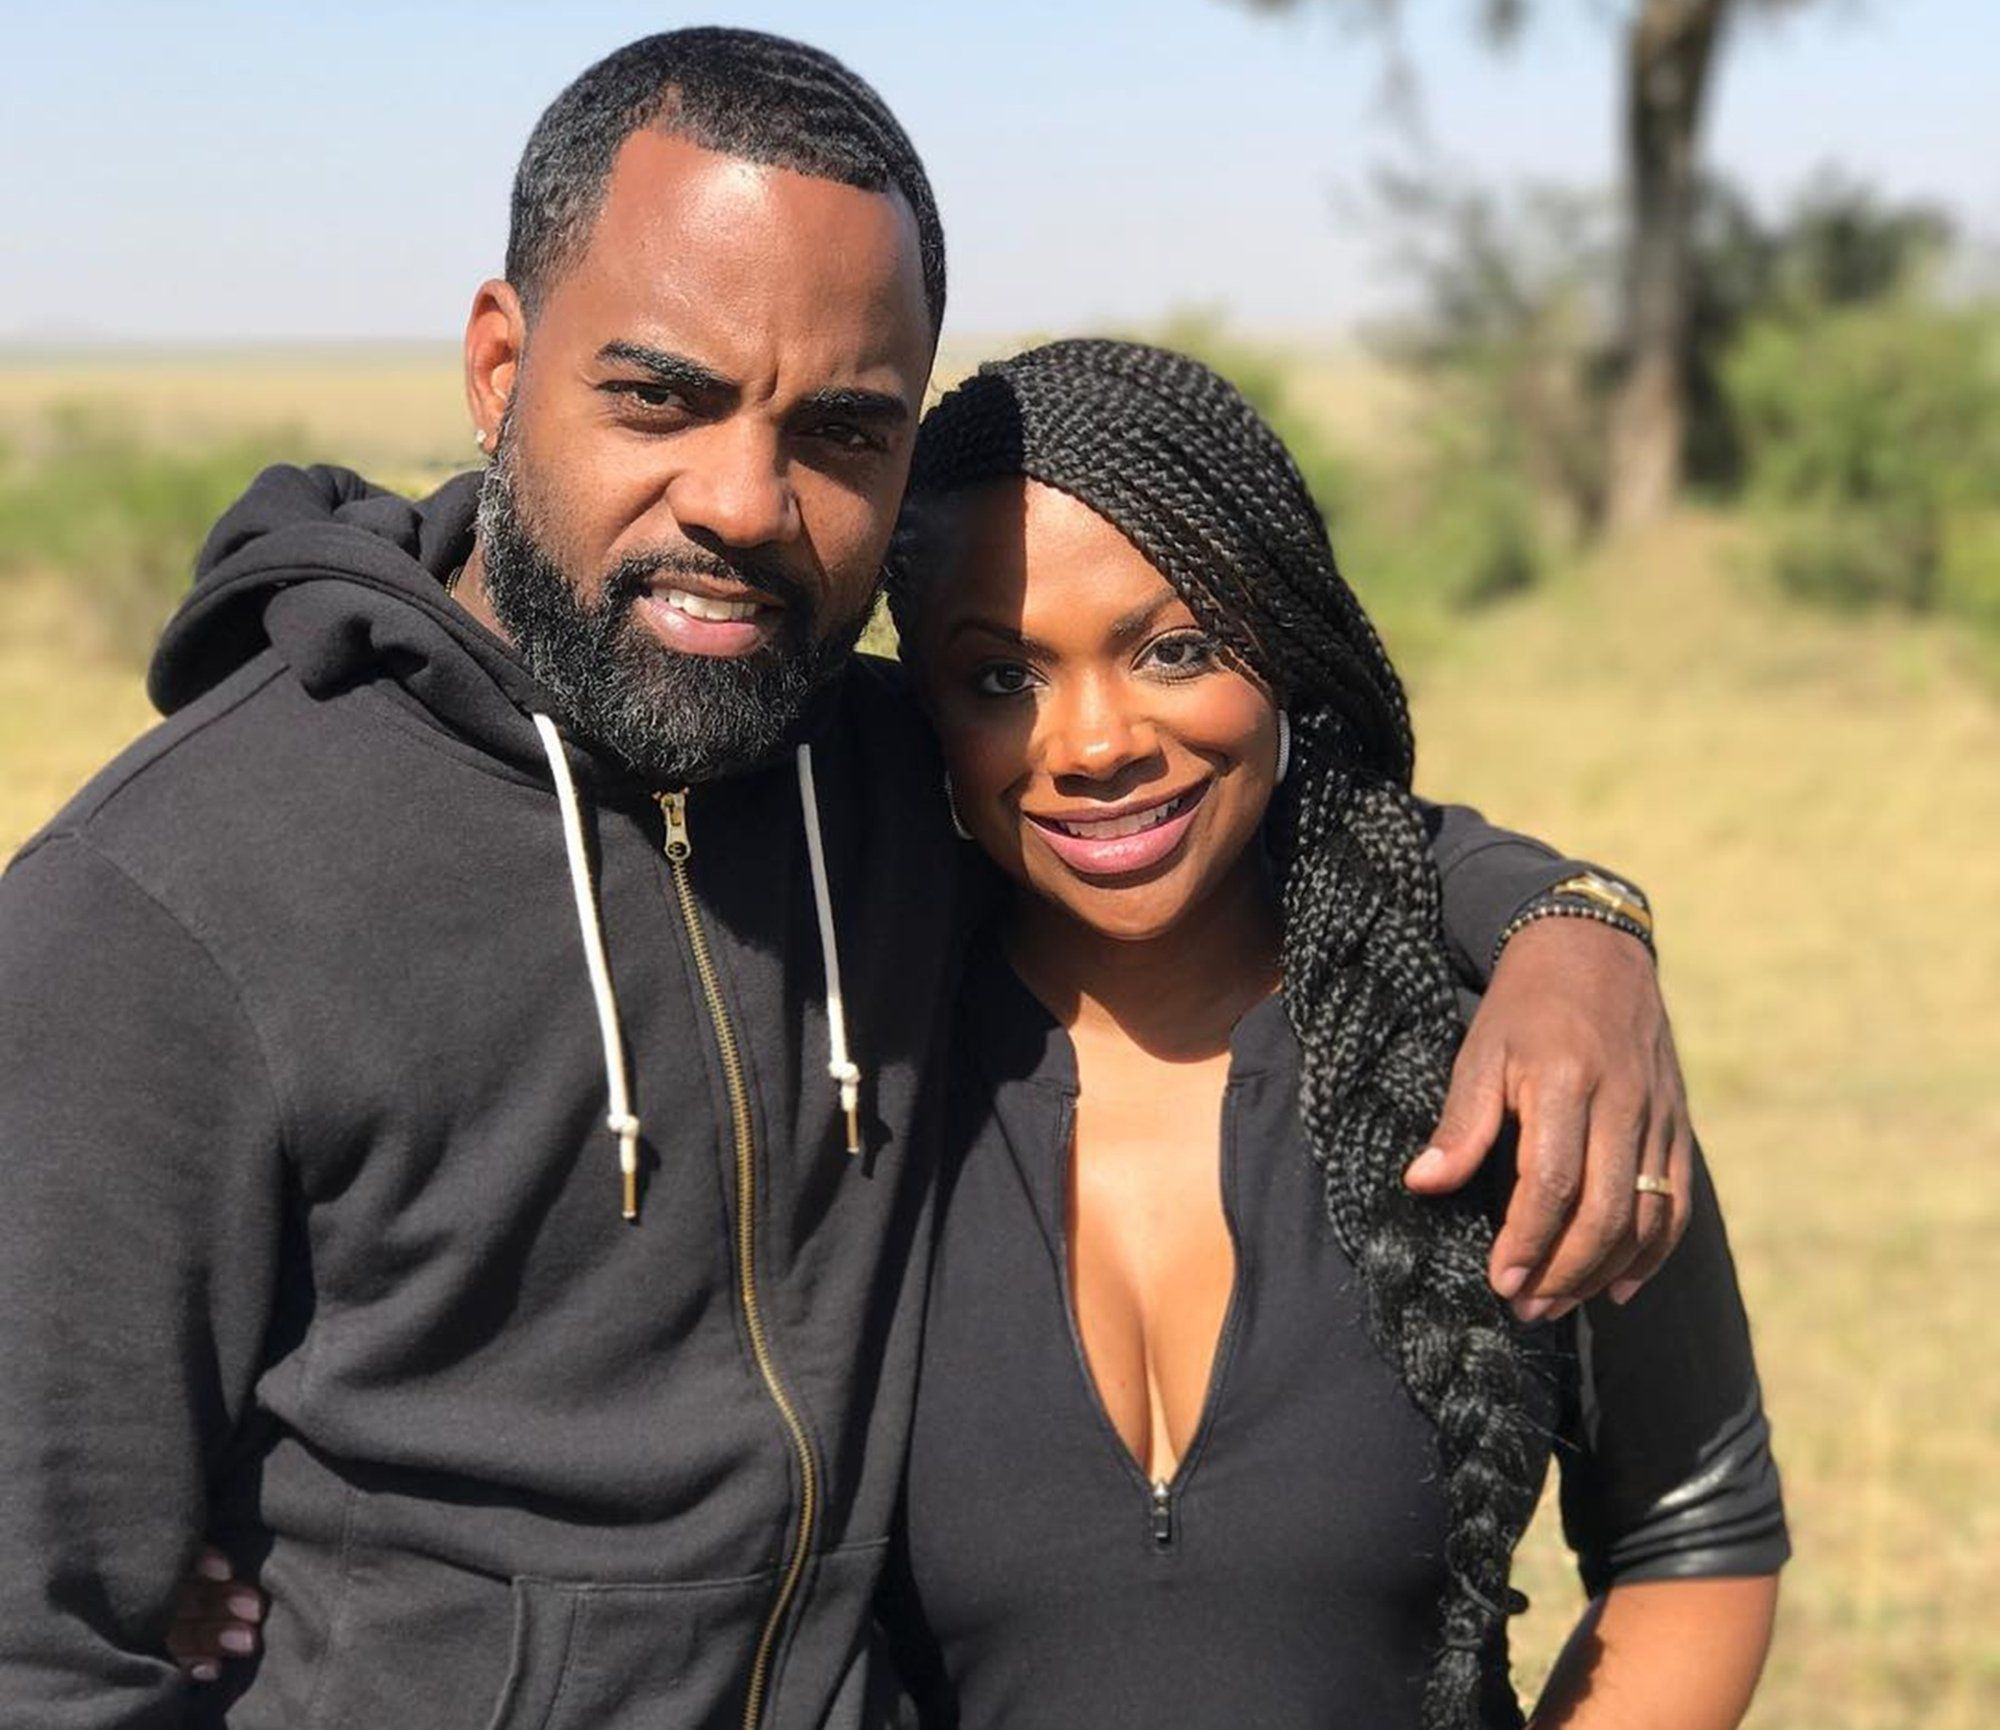 Kandi Burruss Has A New Speak On It Video Out – Check It Out Here